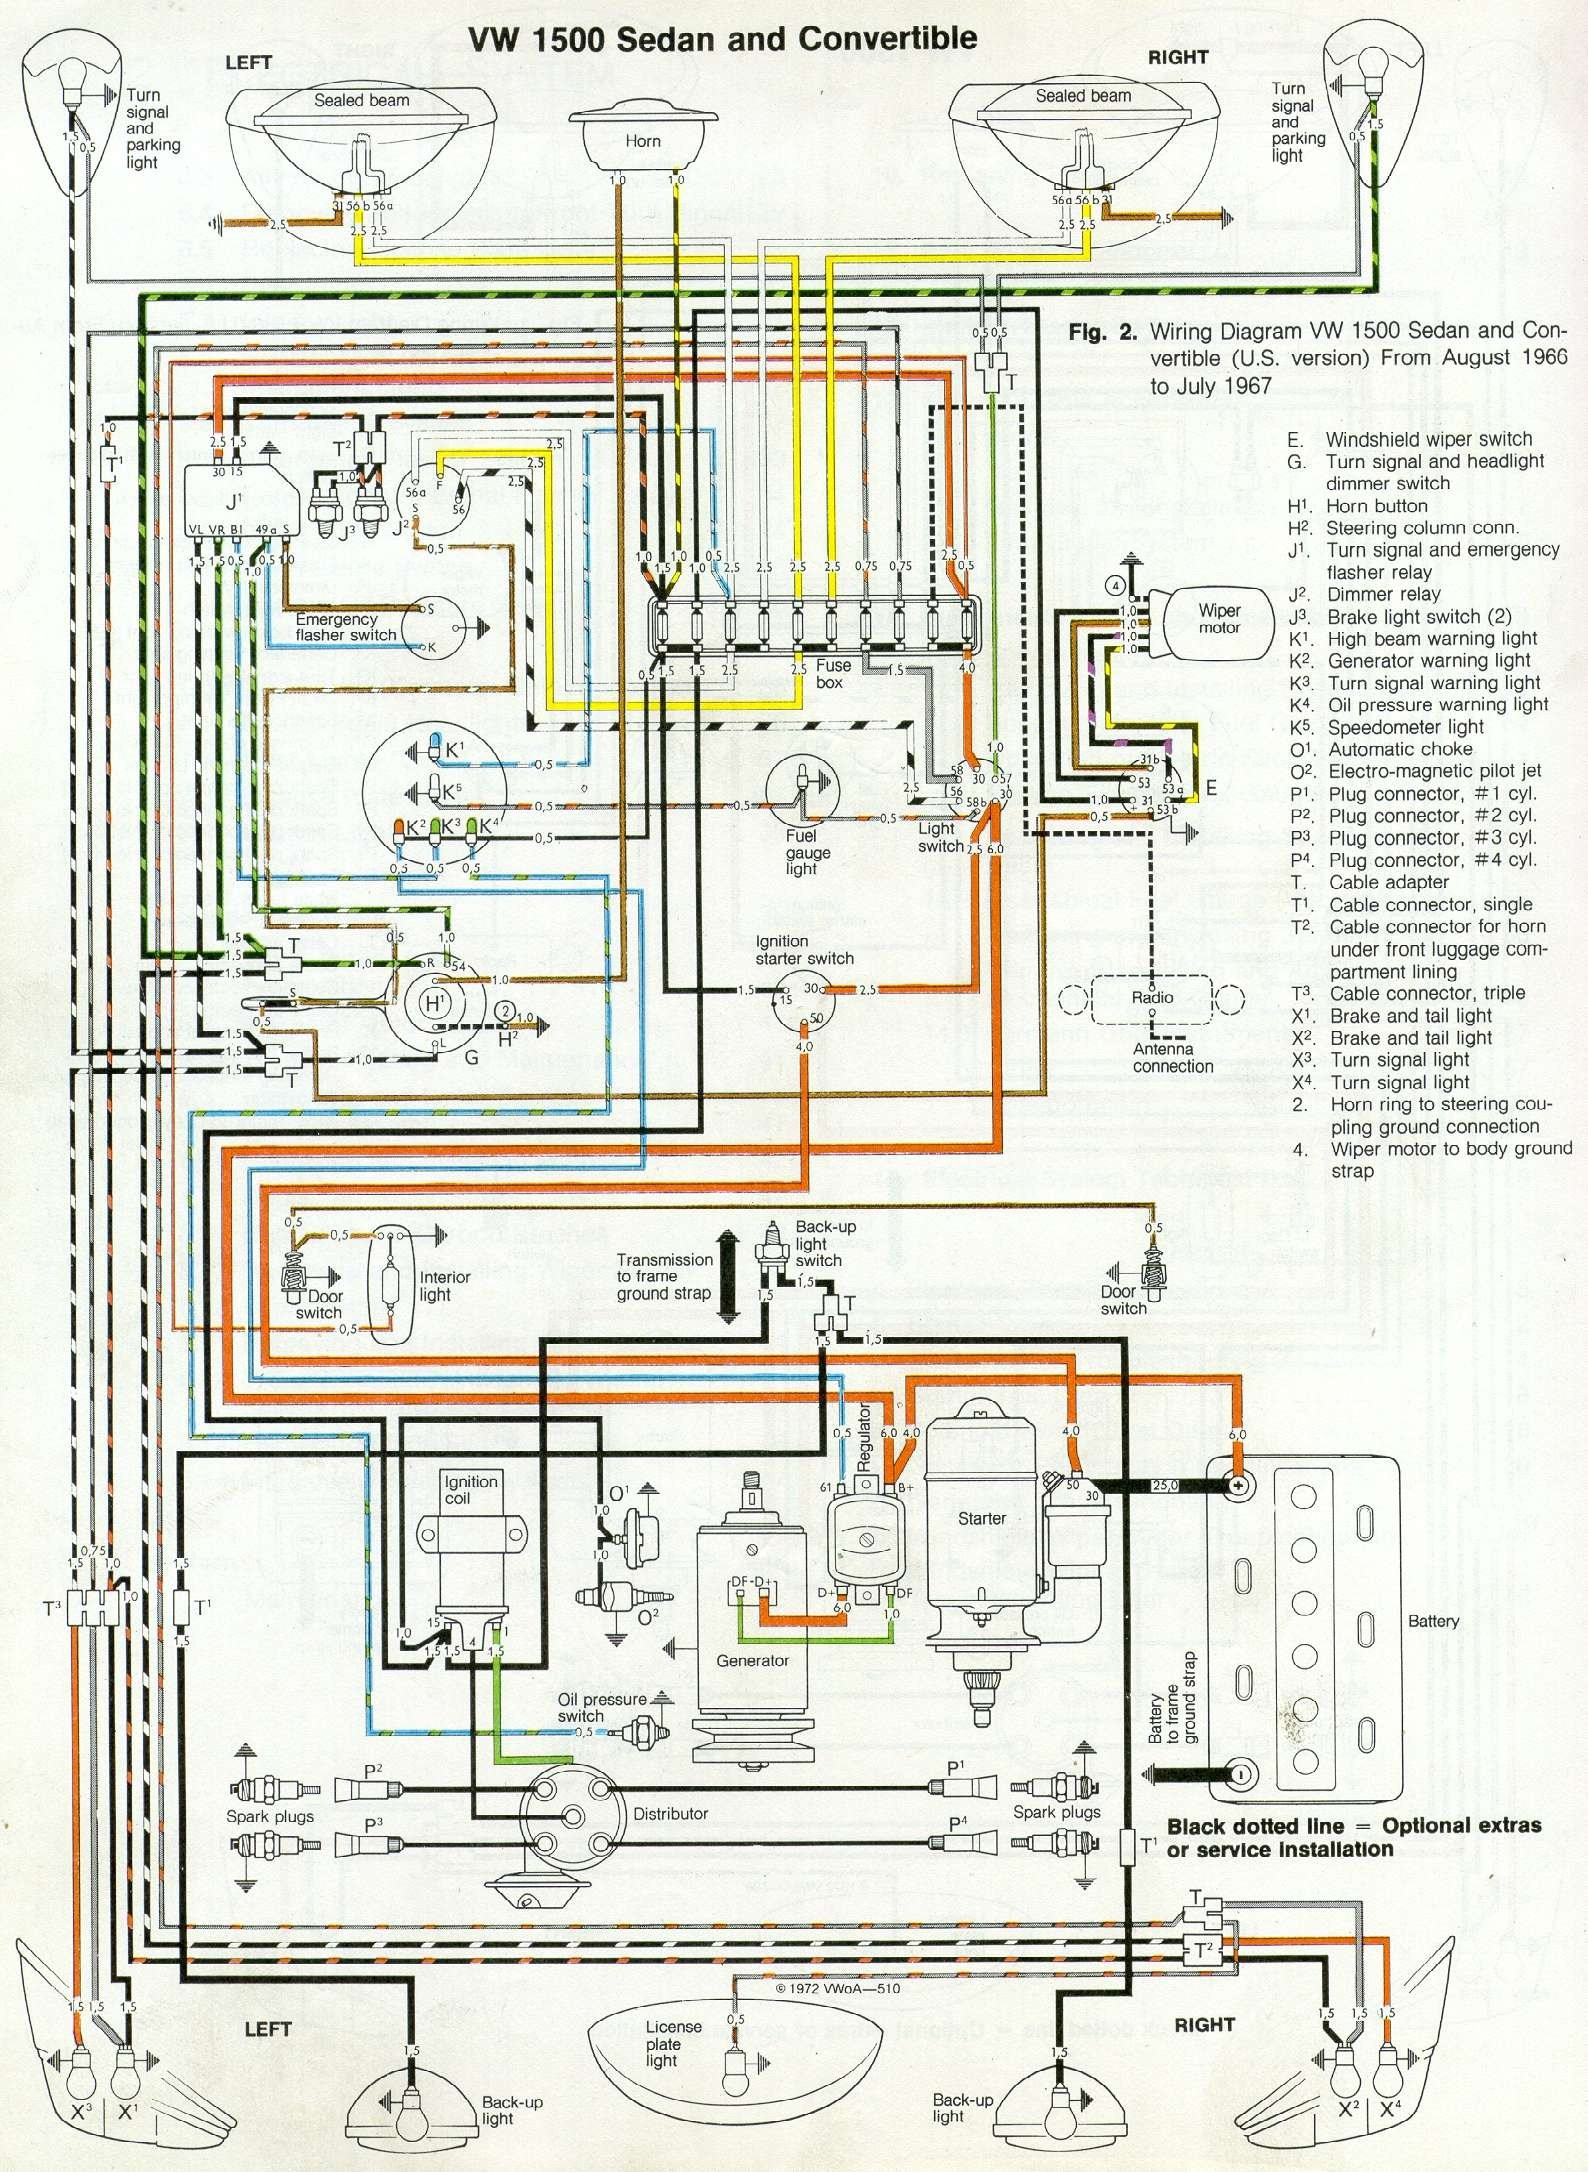 VW Beetle Wiring Digram 67 beetle wiring diagram u s version 1967 vw beetle vw wiring diagrams at gsmx.co